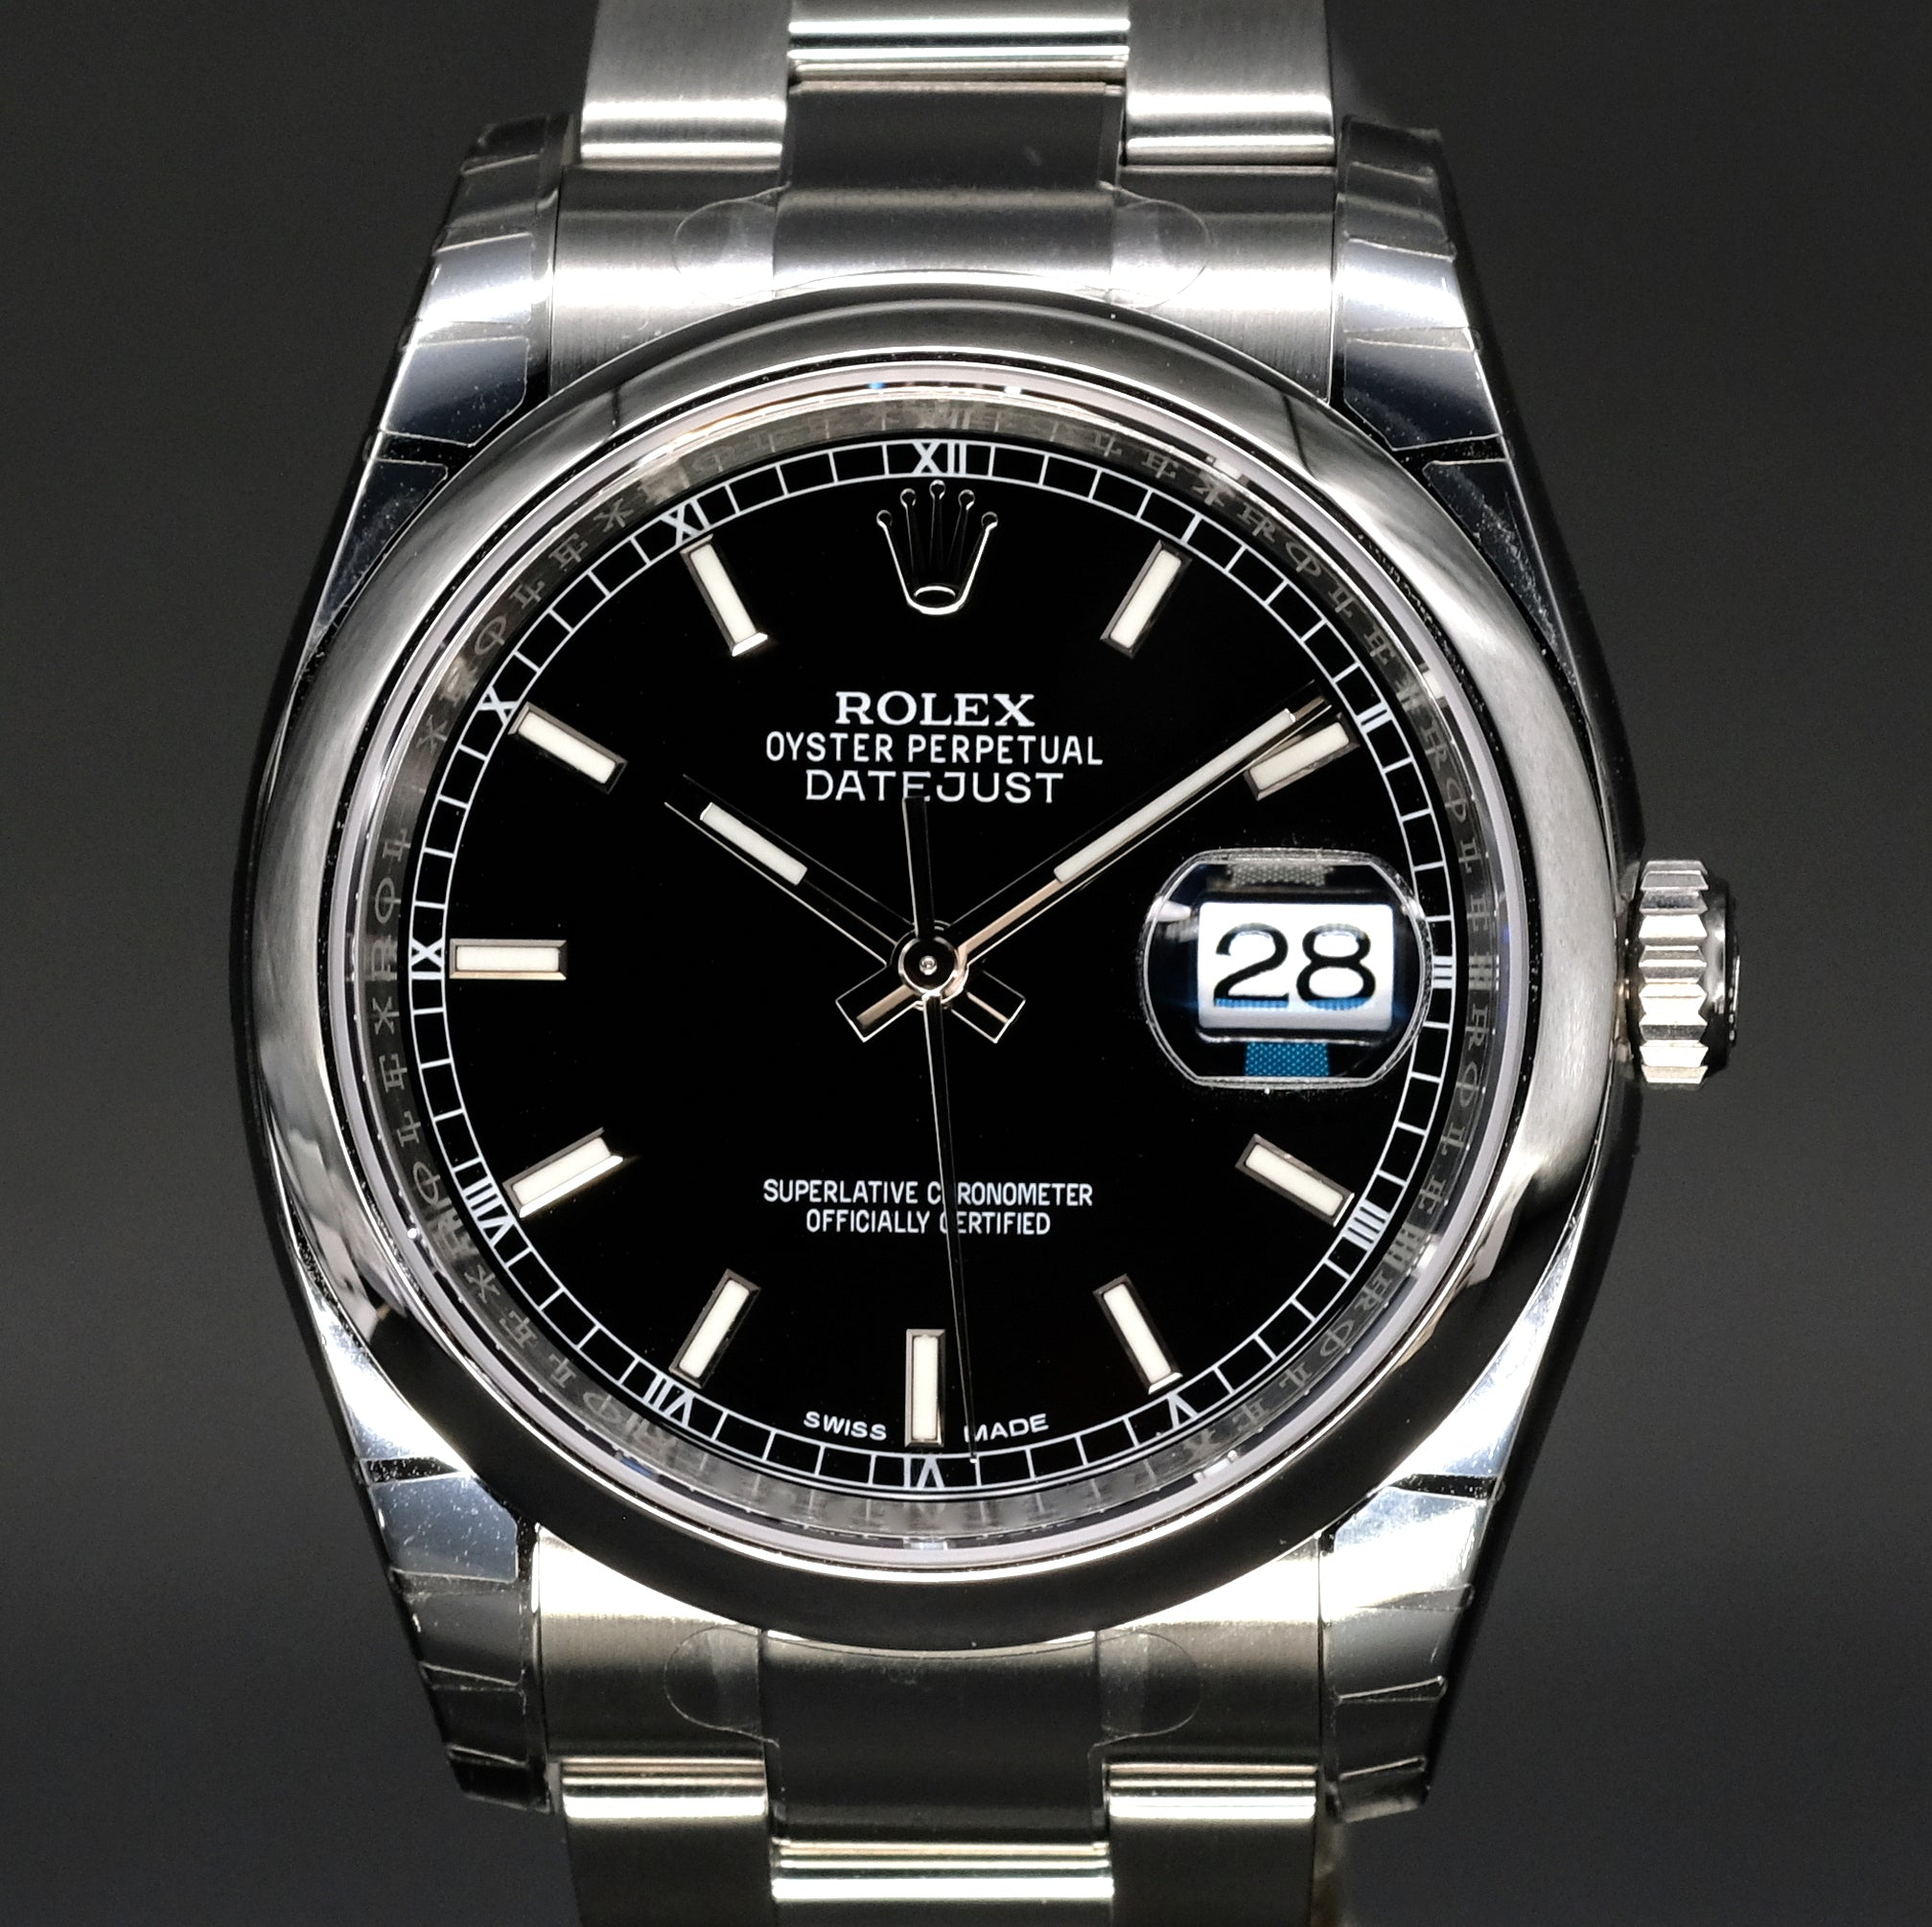 [Brand New Watch] Rolex Datejust 36mm 116200 Black Index Dial (Oyster Bracelet)